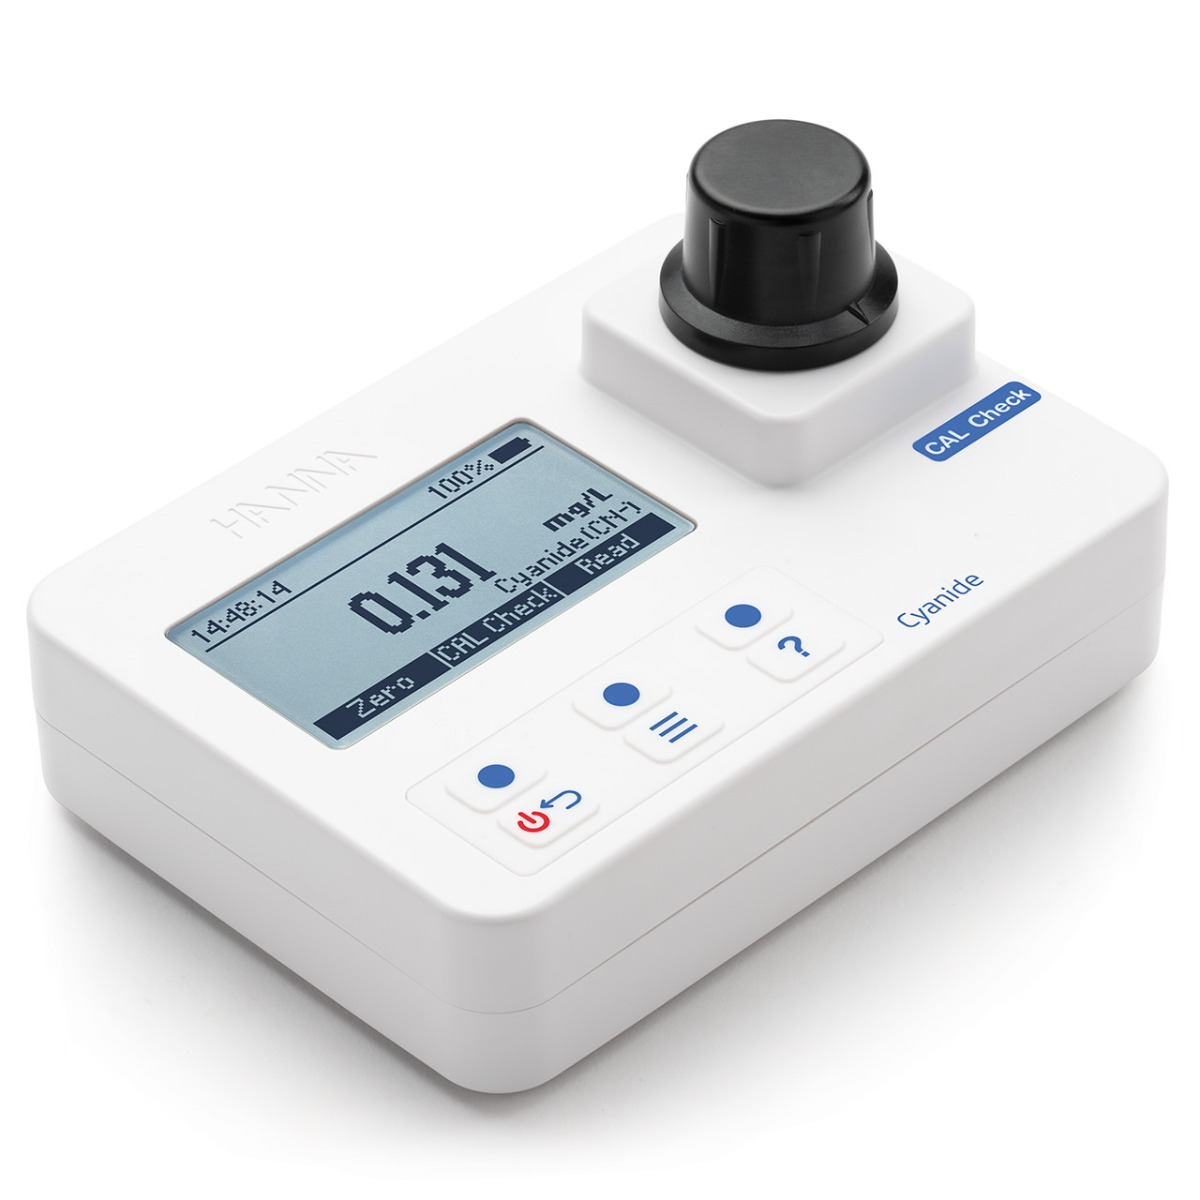 Cyanide Portable Photometer with CAL Check – HI97714